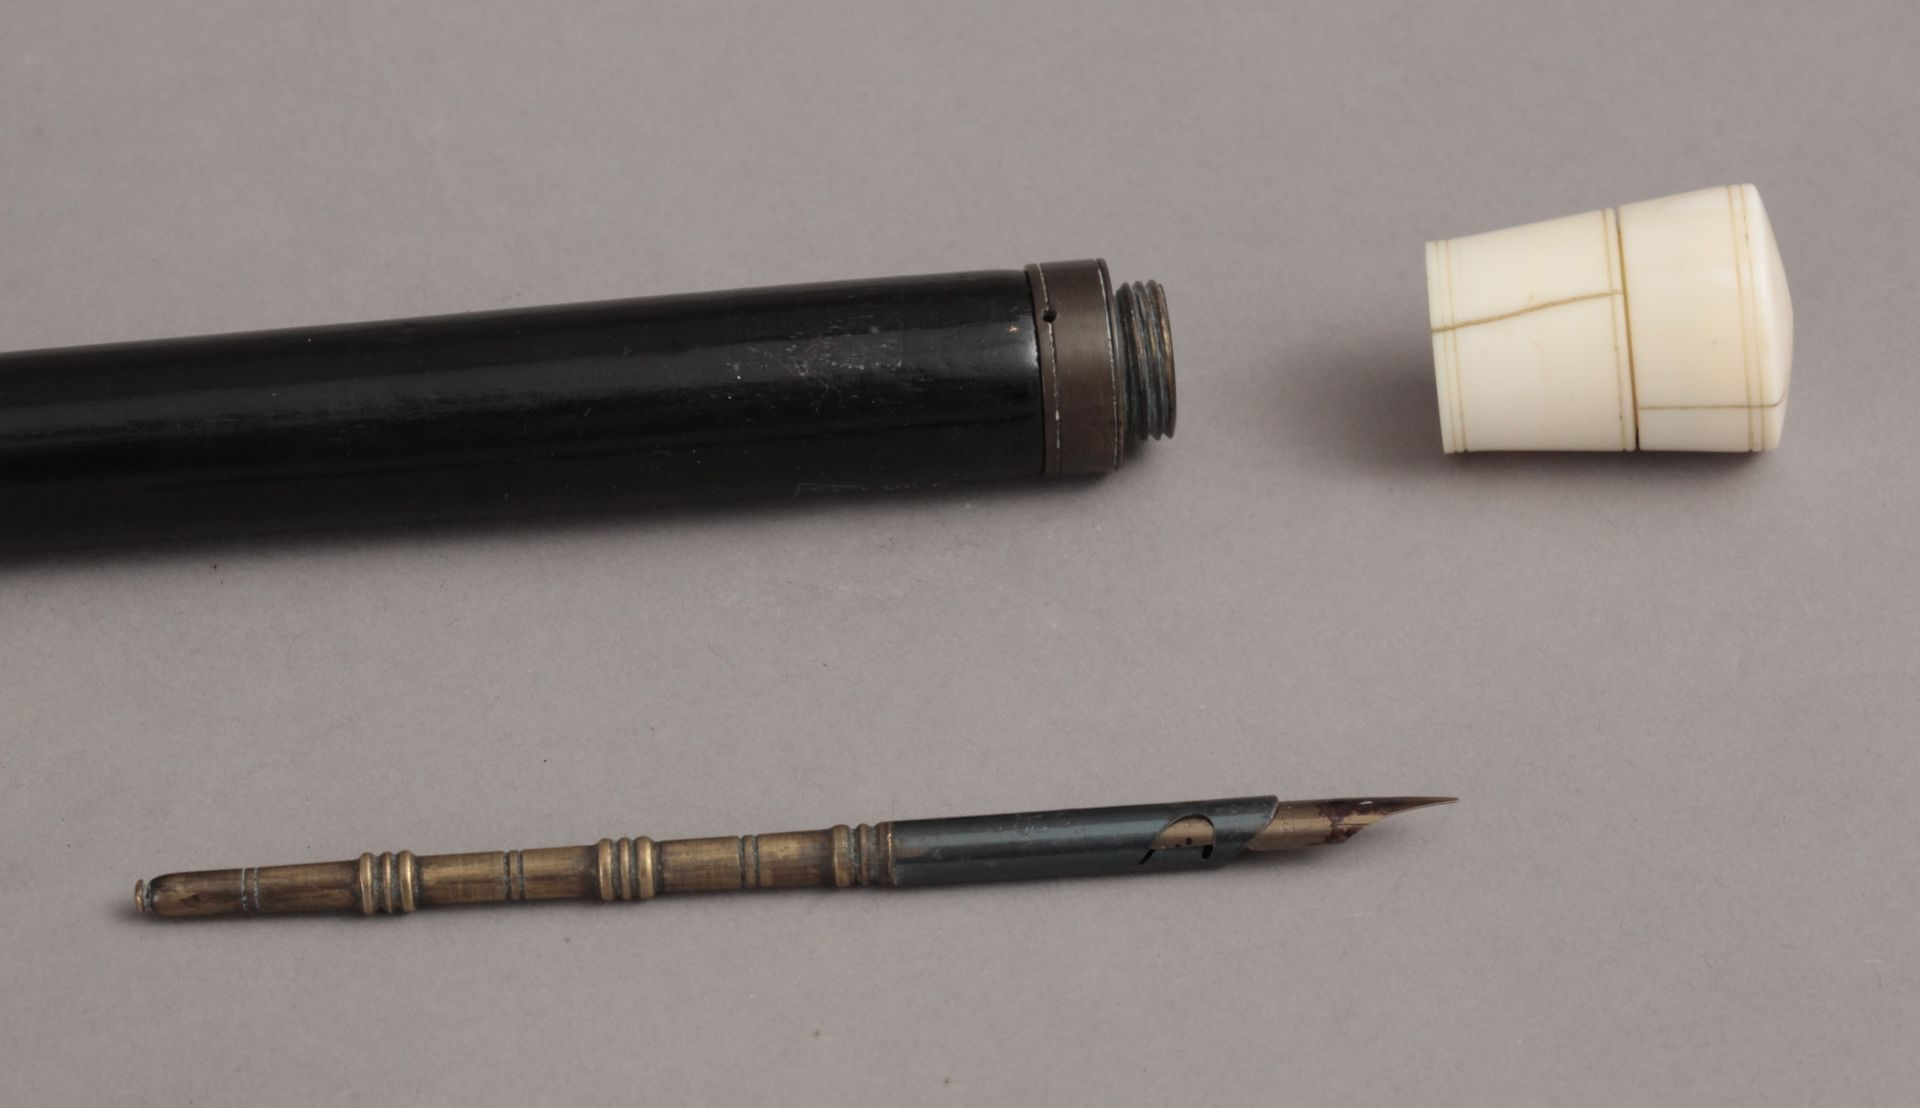 A 19th century ivory handled walking stick - Bild 3 aus 7